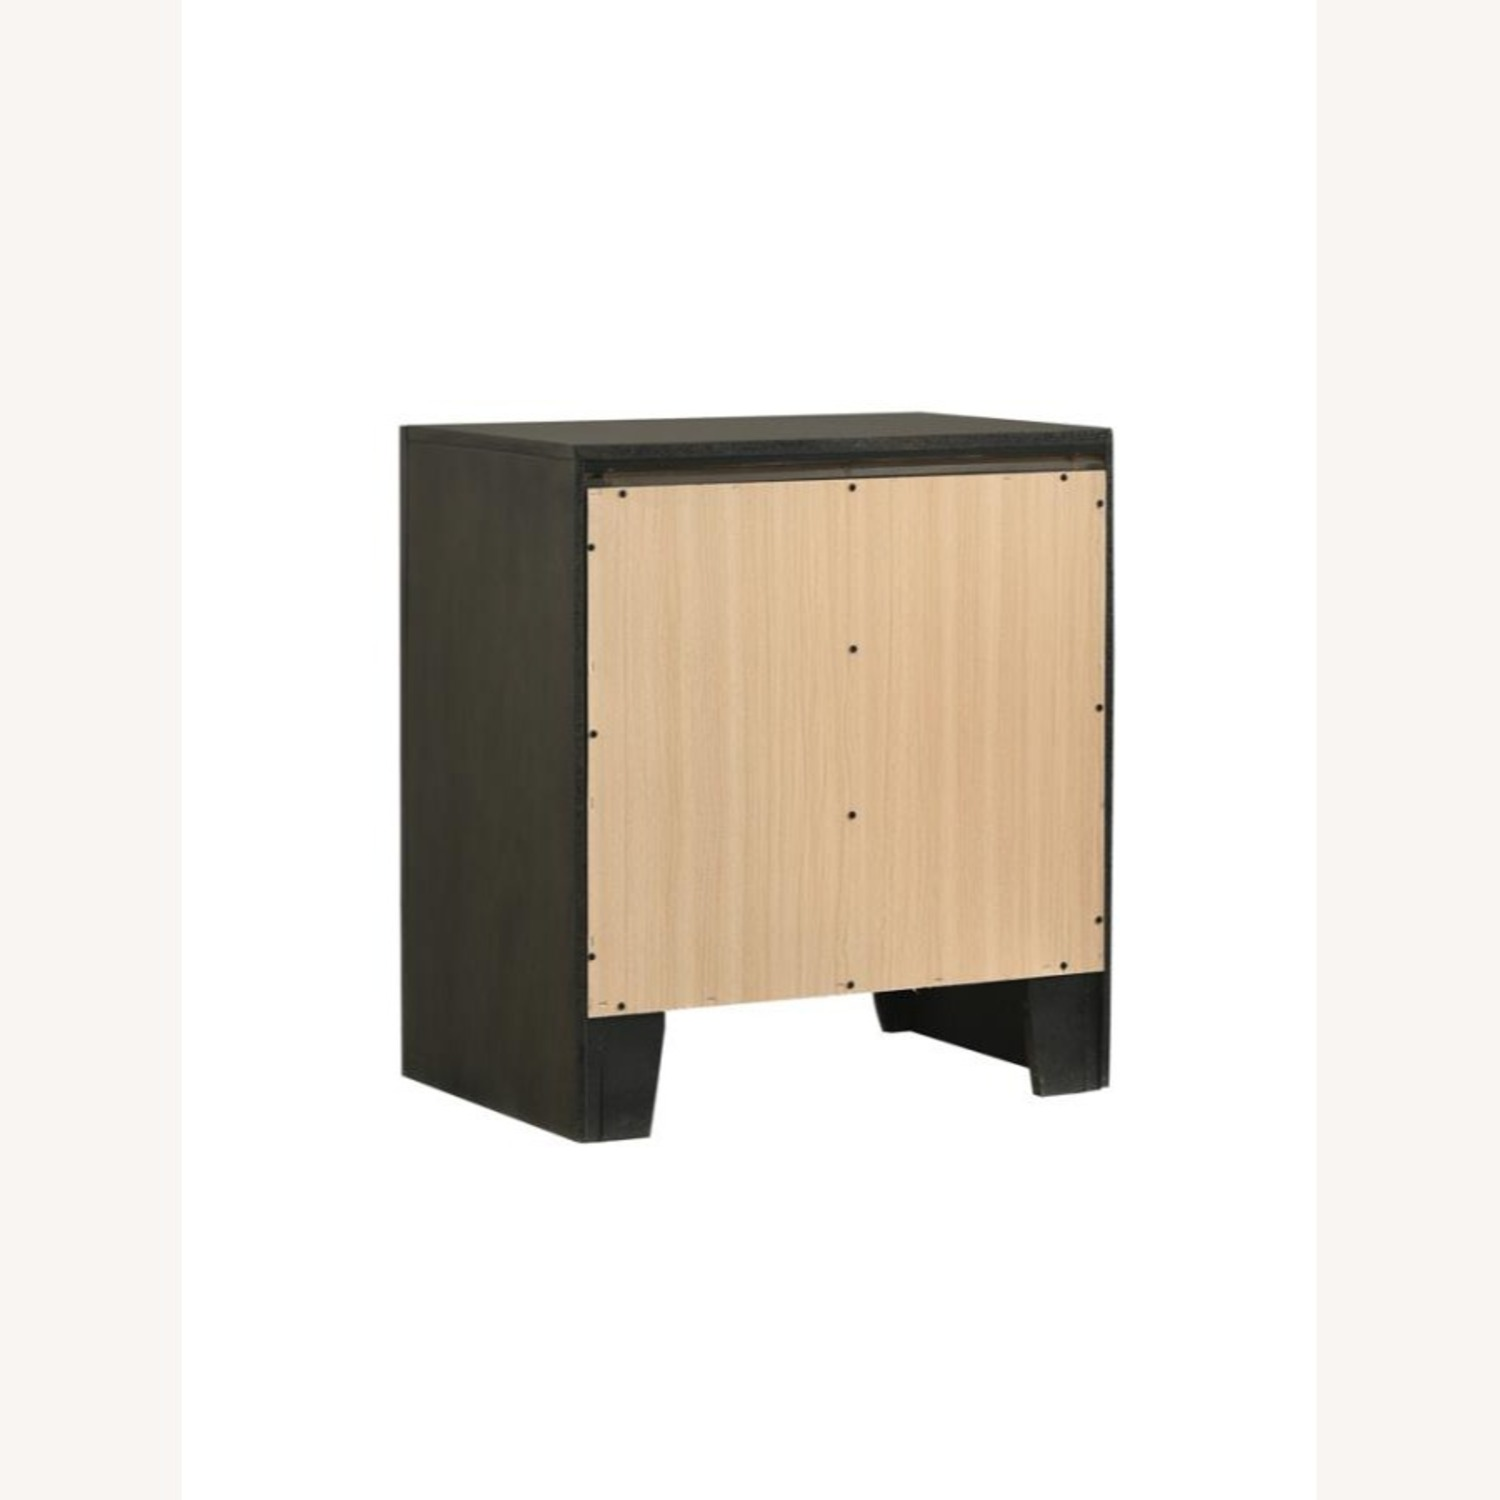 Nightstand In Mod Grey Finish W/ 3D Bow Tie Fronts - image-3